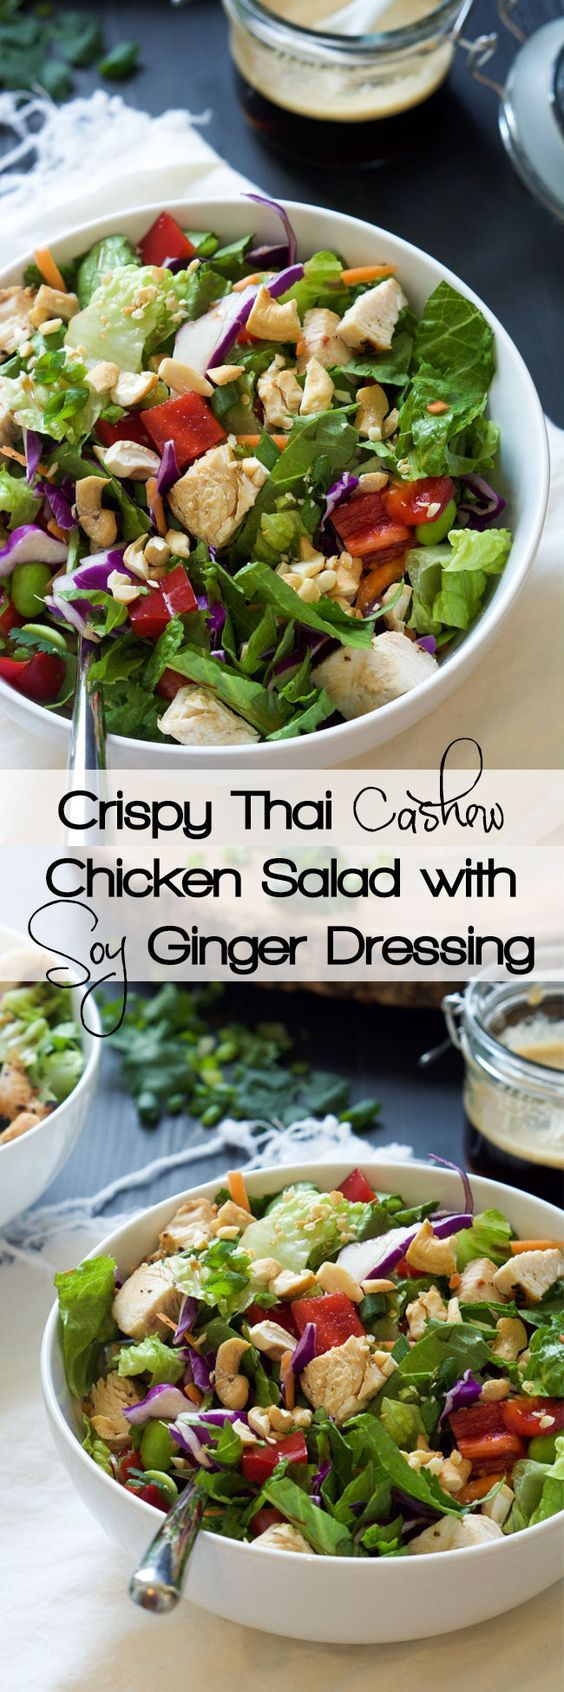 Thai Chicken Salad, Healthy, Panera, Chopped, Recipe, Easy, Spicy, Low Carb, Clean Eating, Cabbage, Best, Gluten Free